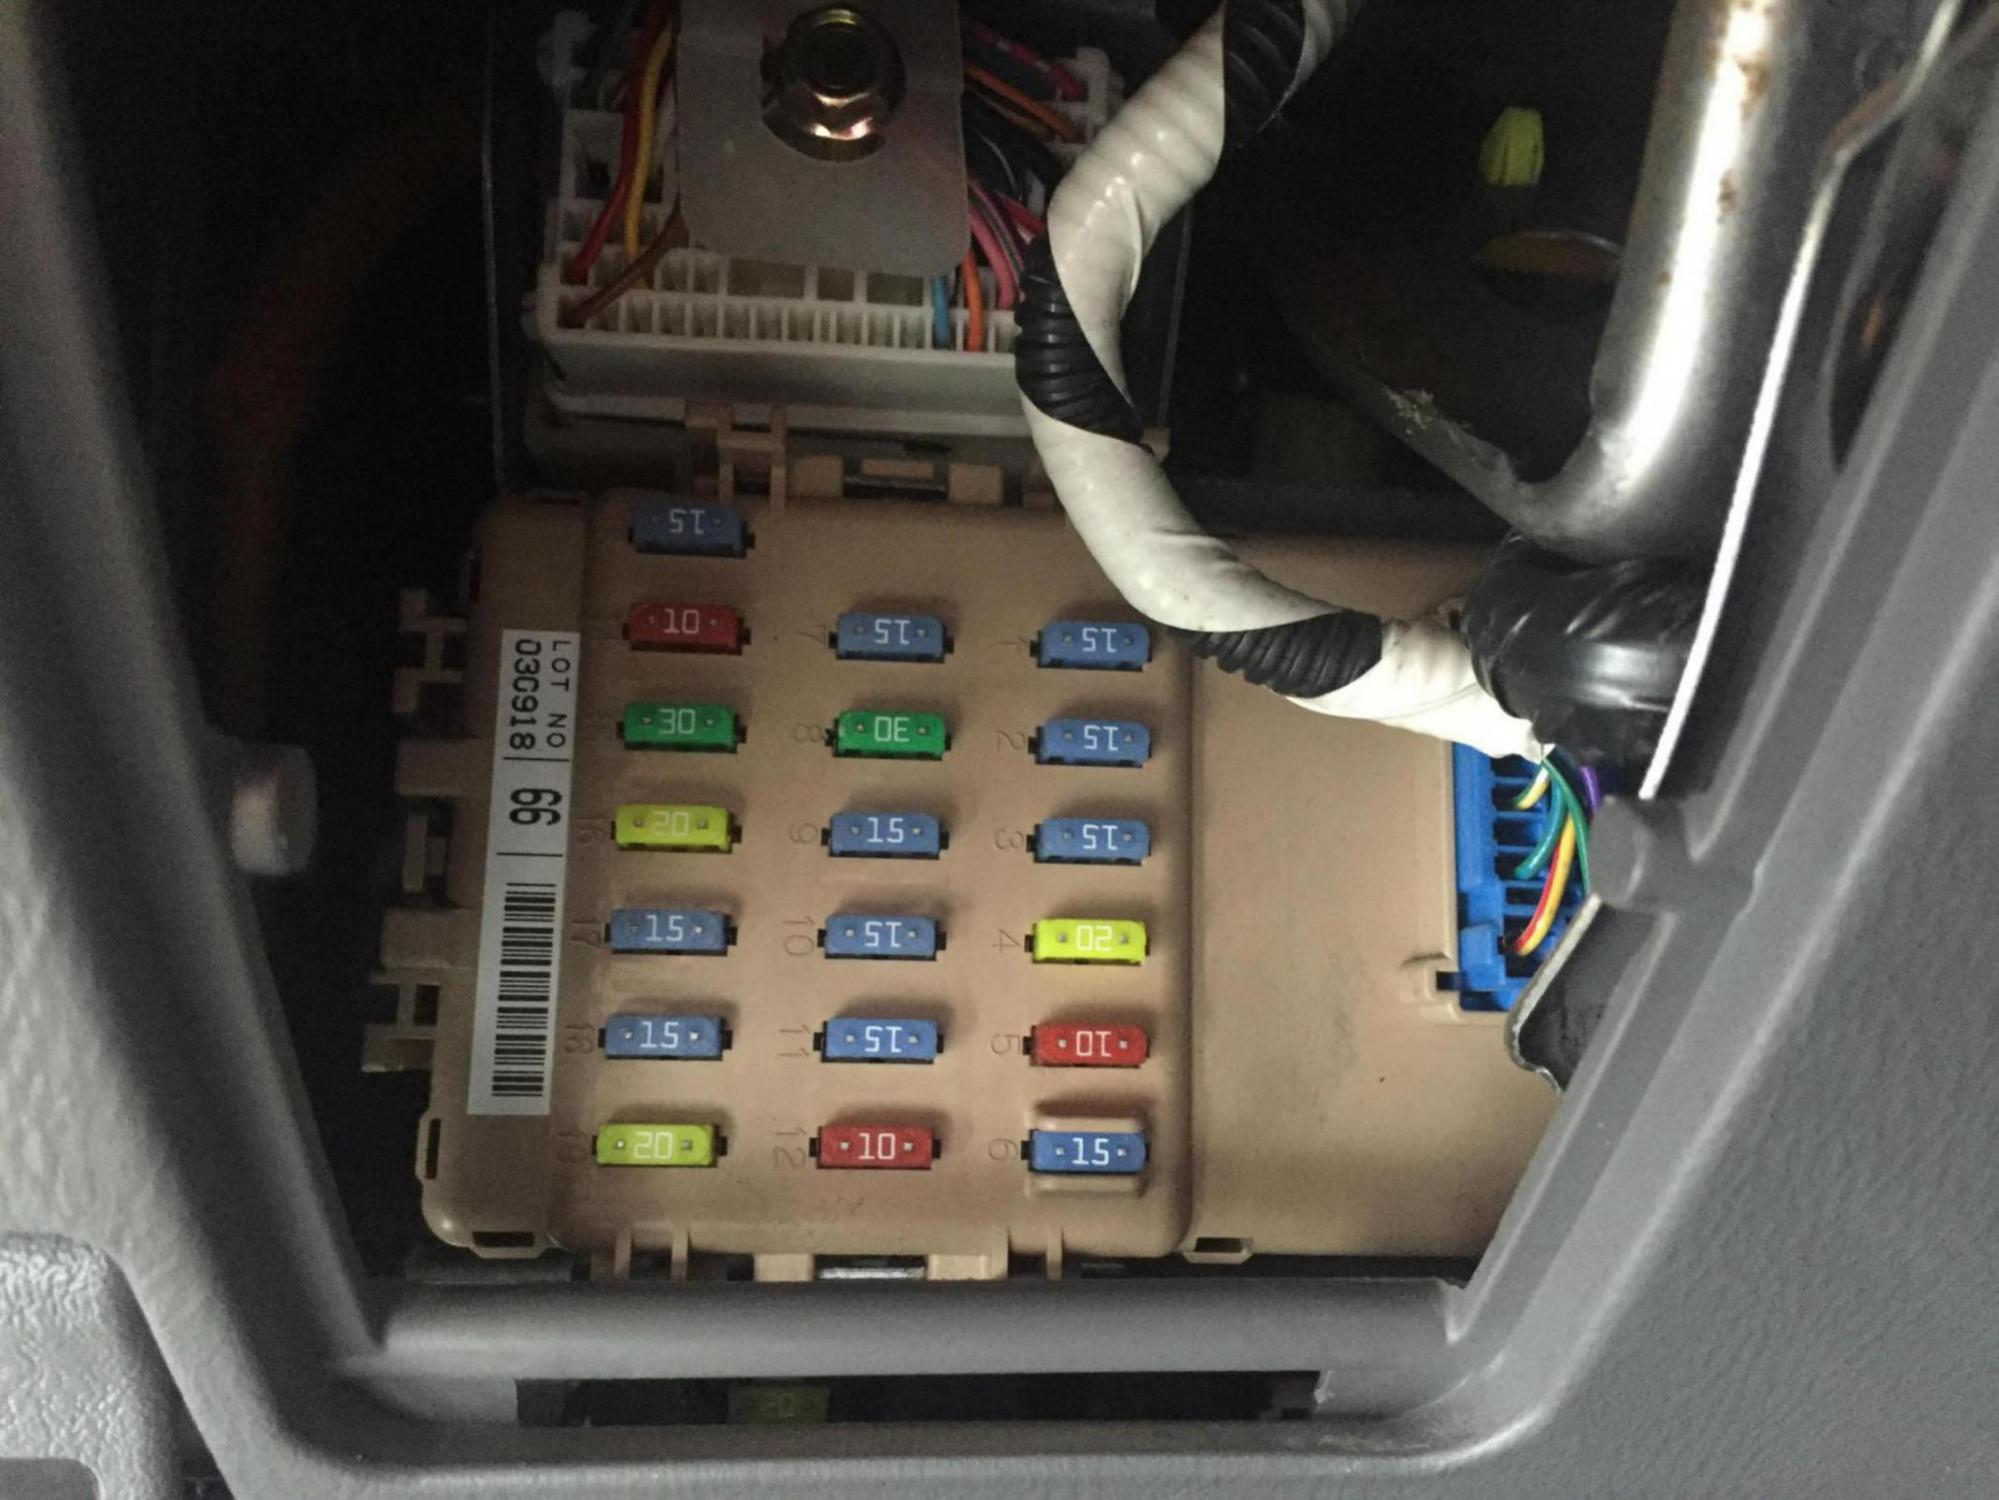 hight resolution of subaru baja fuse box location wiring diagram used subaru baja fuse box location